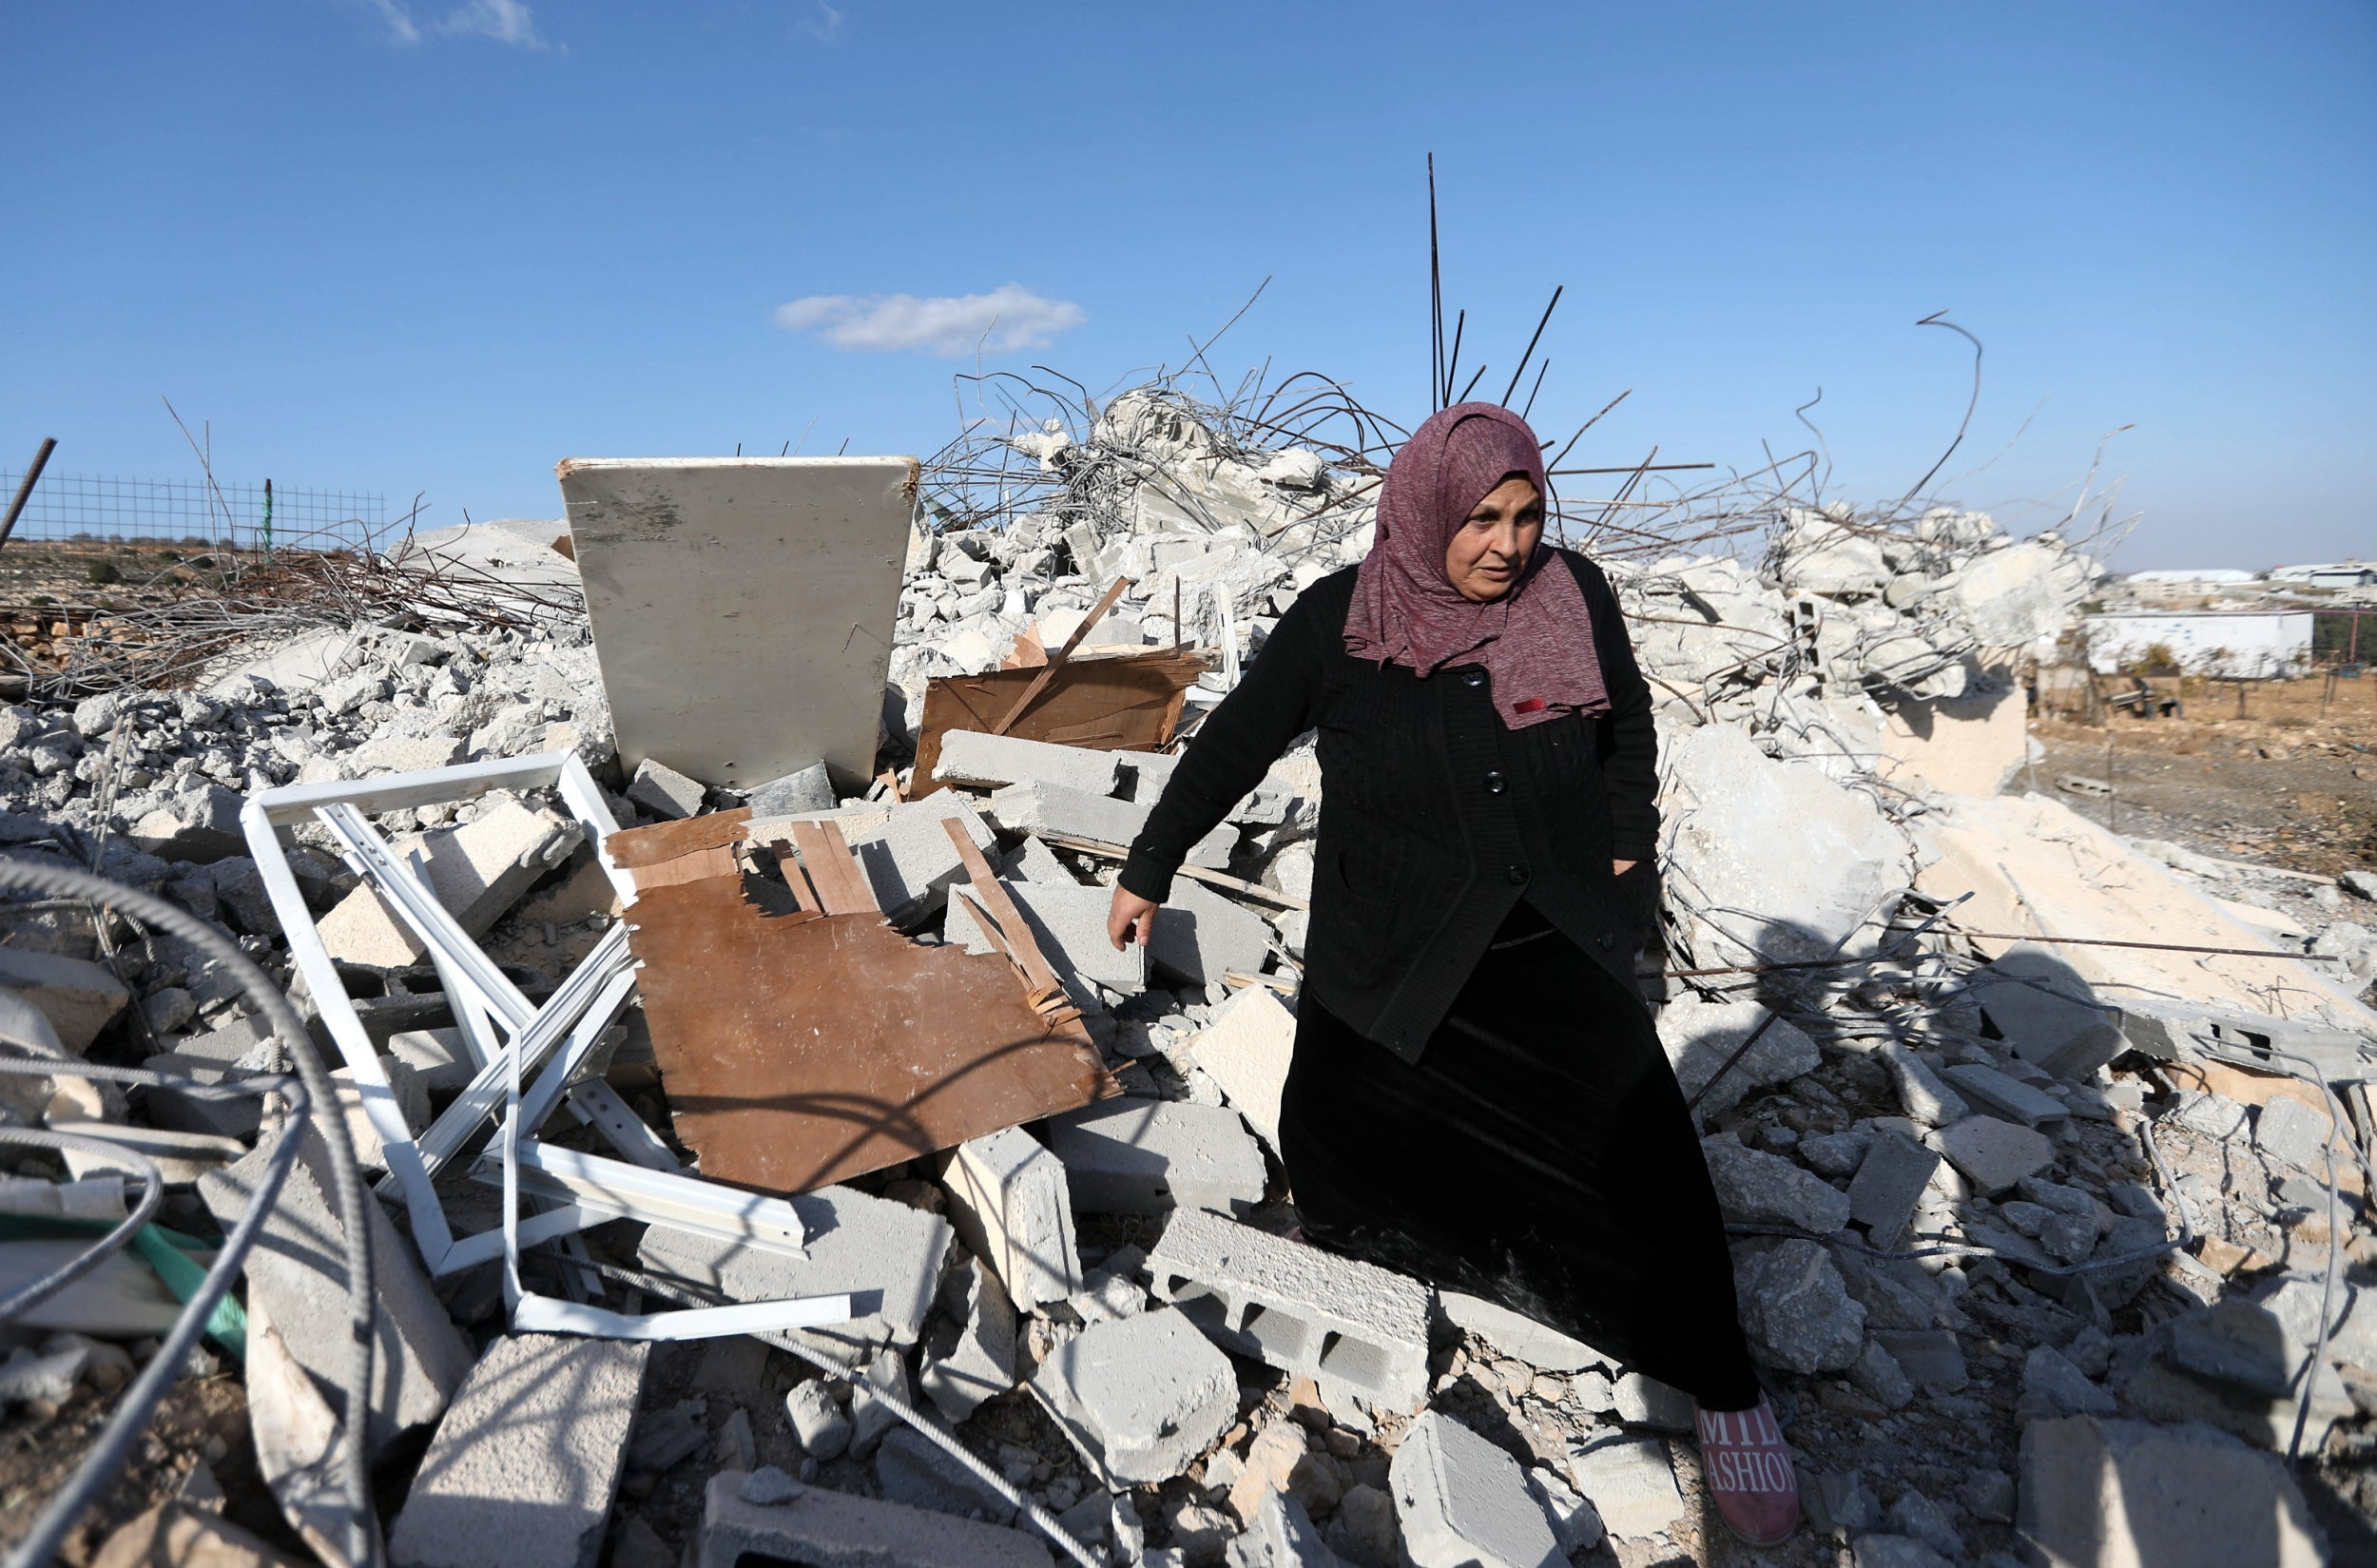 Israel set to be investigated for war crimes in Palestinian Territories, ICC announces